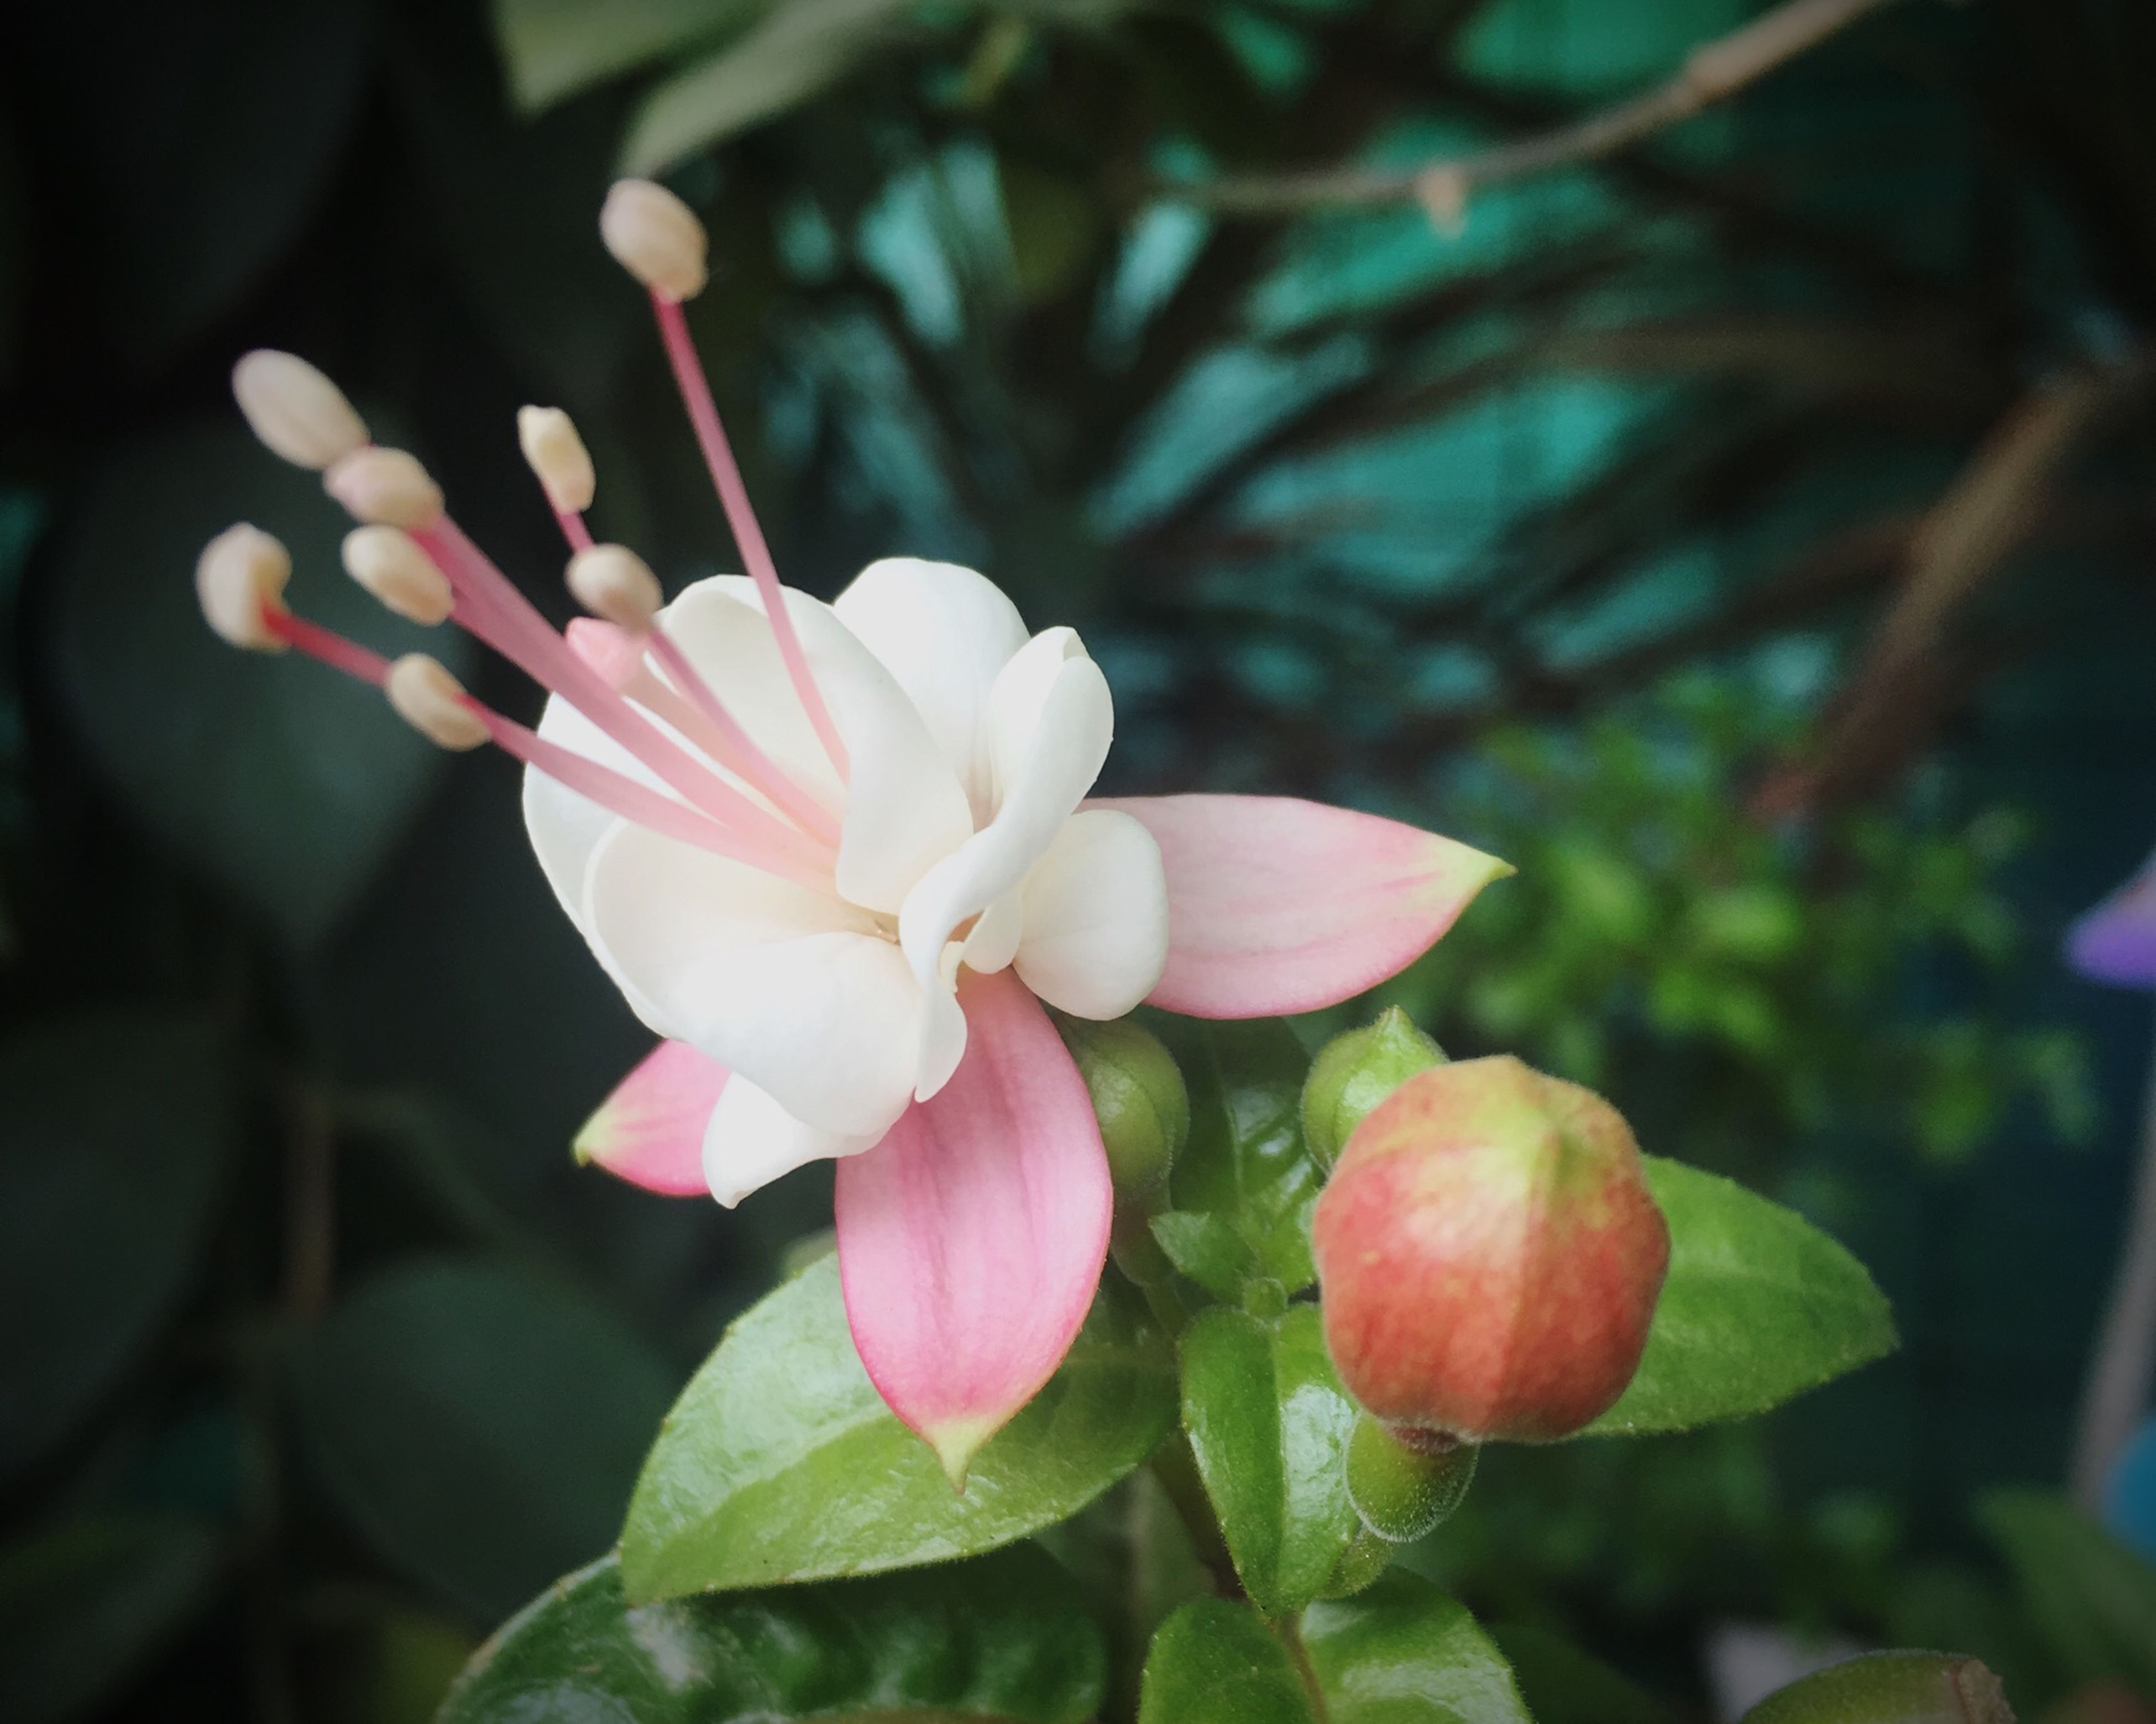 flower, freshness, fragility, growth, close-up, petal, beauty in nature, pink color, focus on foreground, springtime, nature, flower head, in bloom, blossom, botany, plant, day, outdoors, growing, blooming, no people